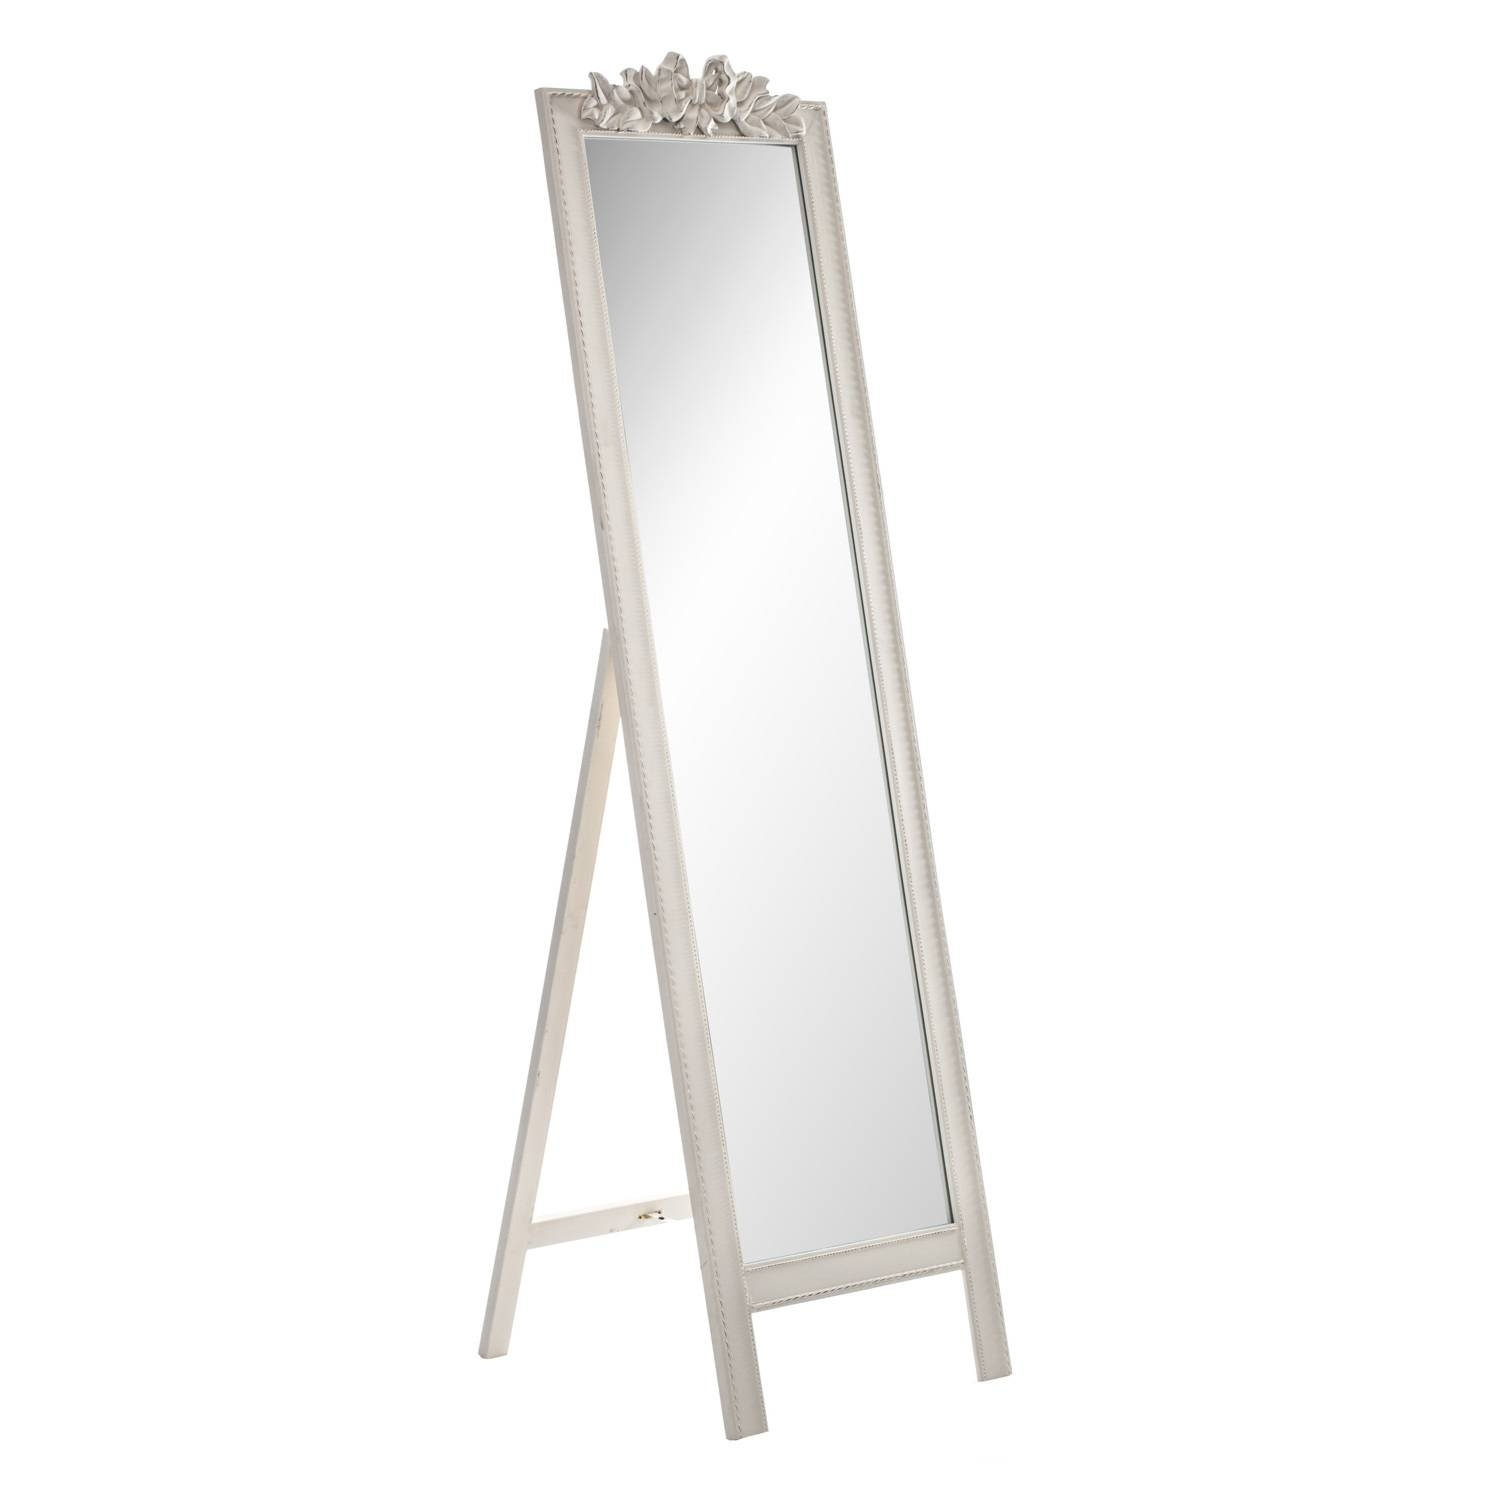 Free Standing Floor Mirrors | The Range for Free Standing Shabby Chic Mirrors (Image 2 of 15)